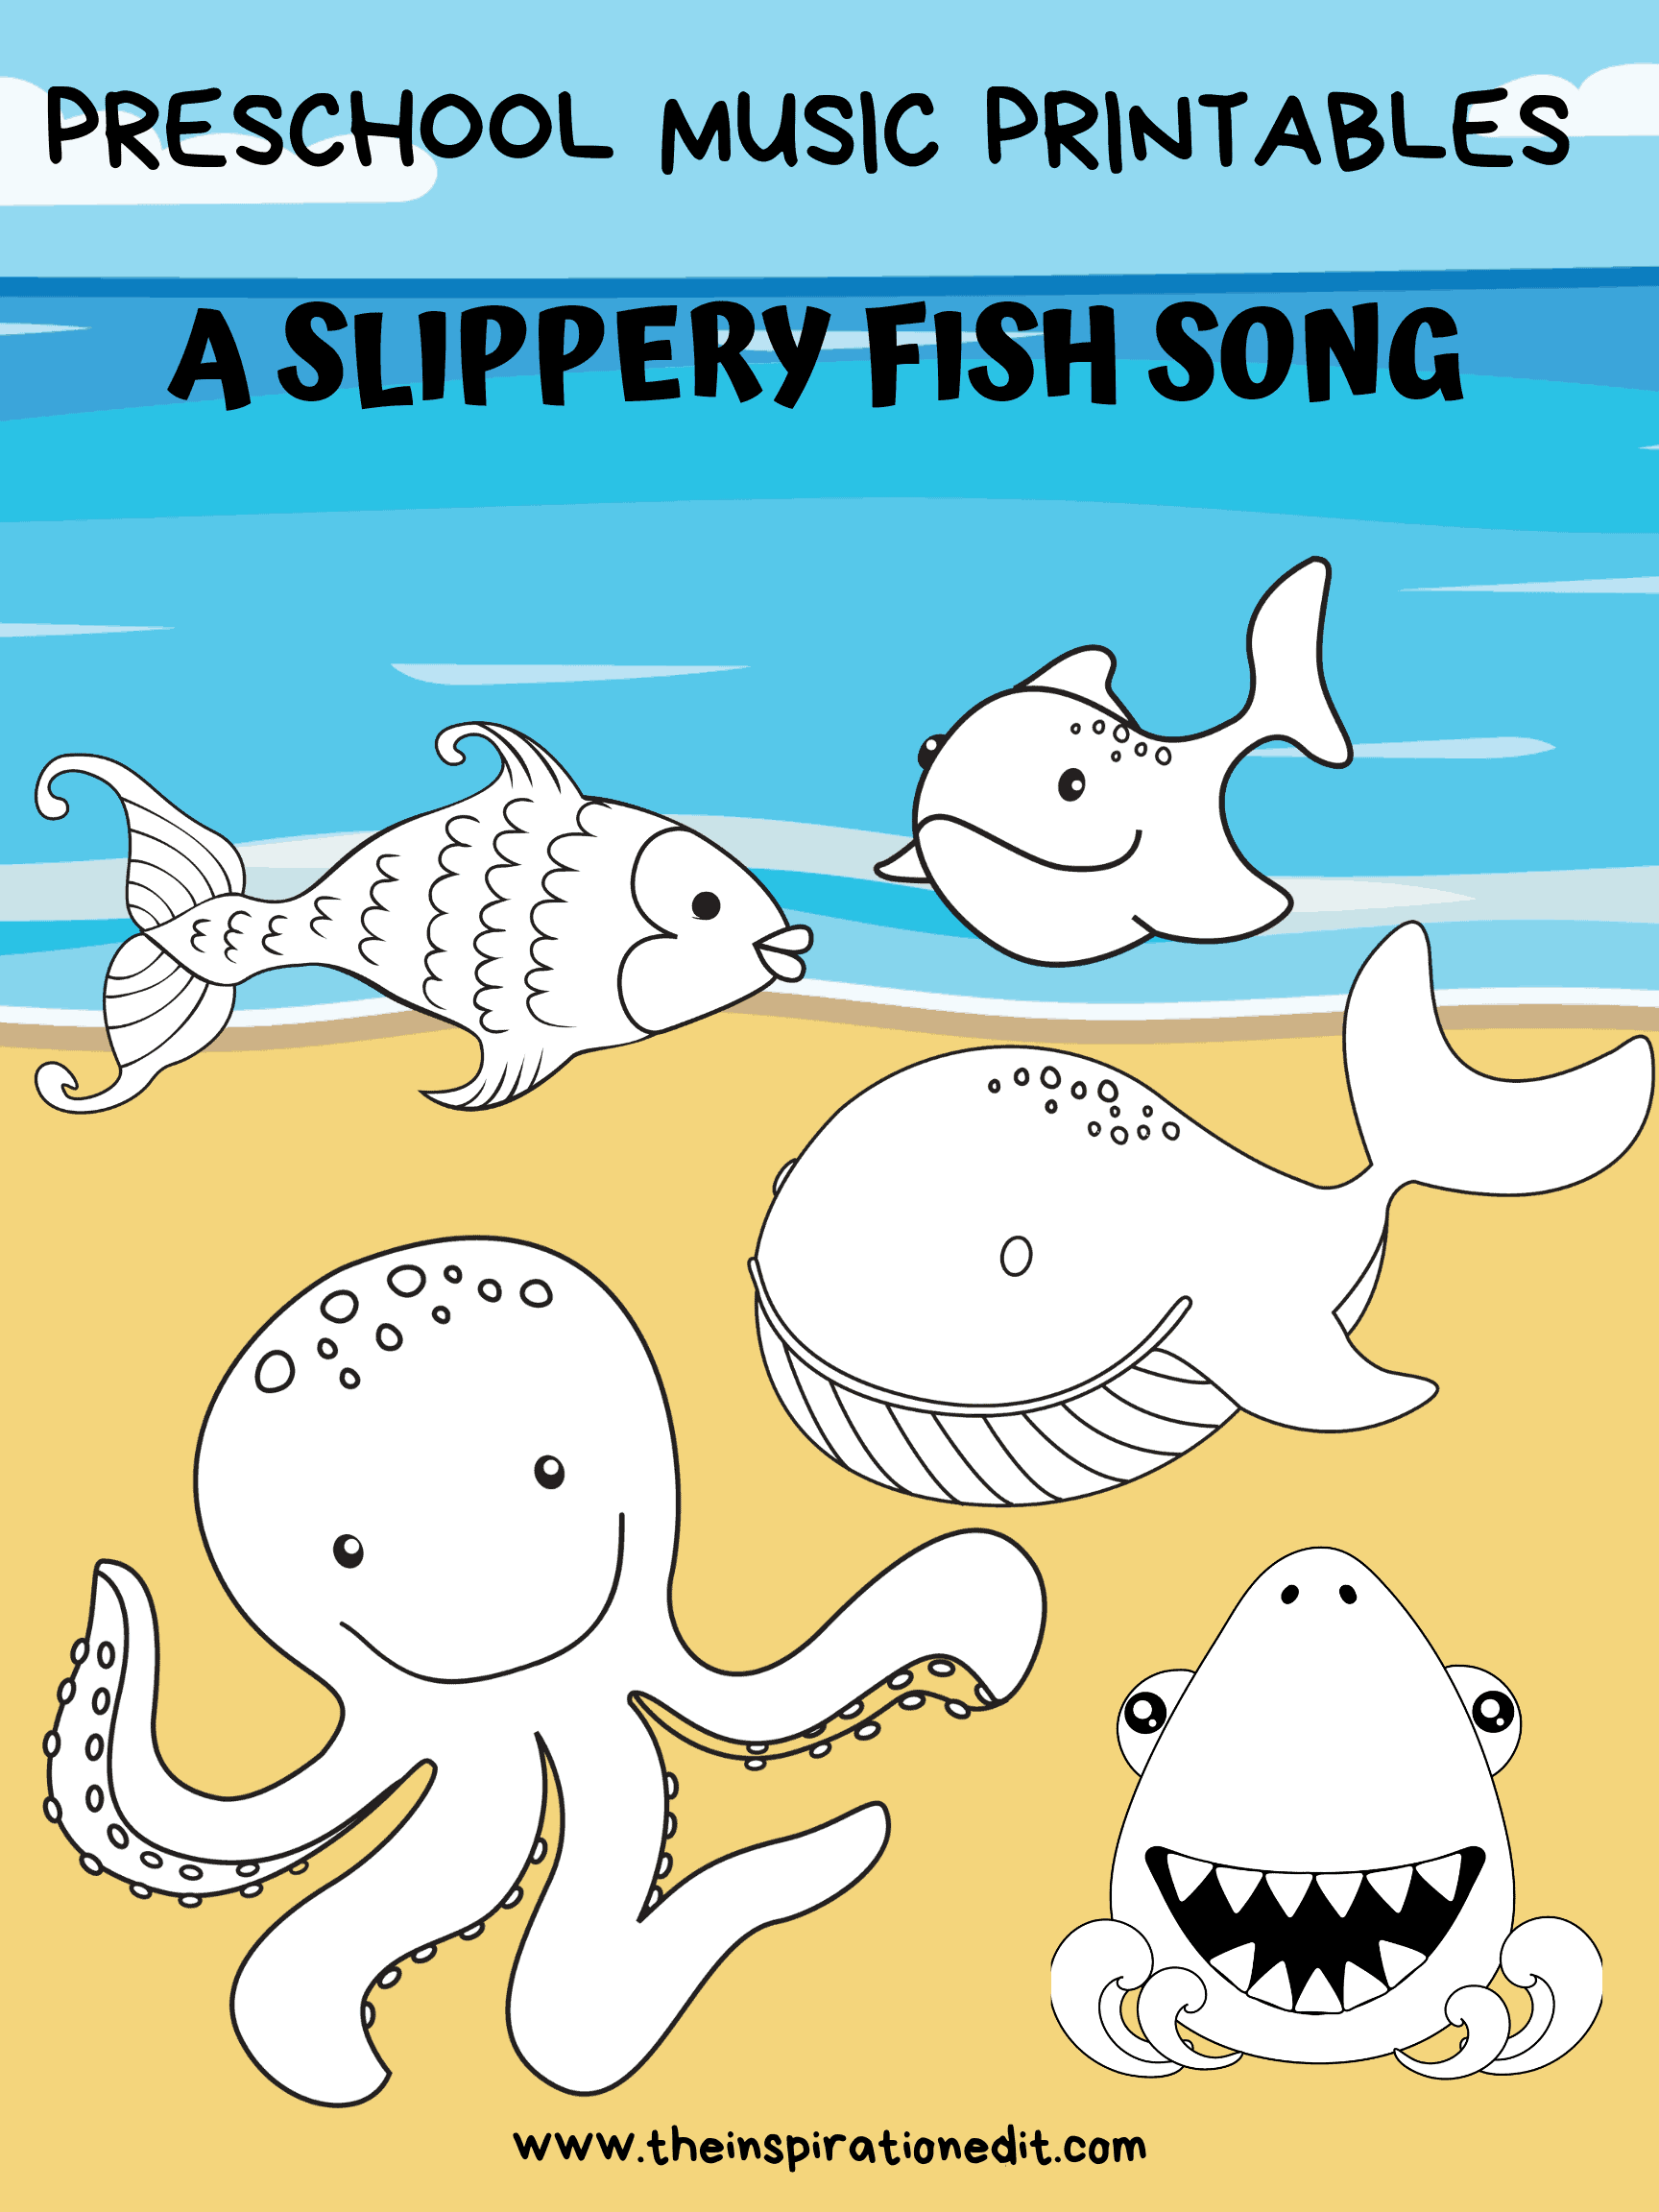 A slippery fish song and printables